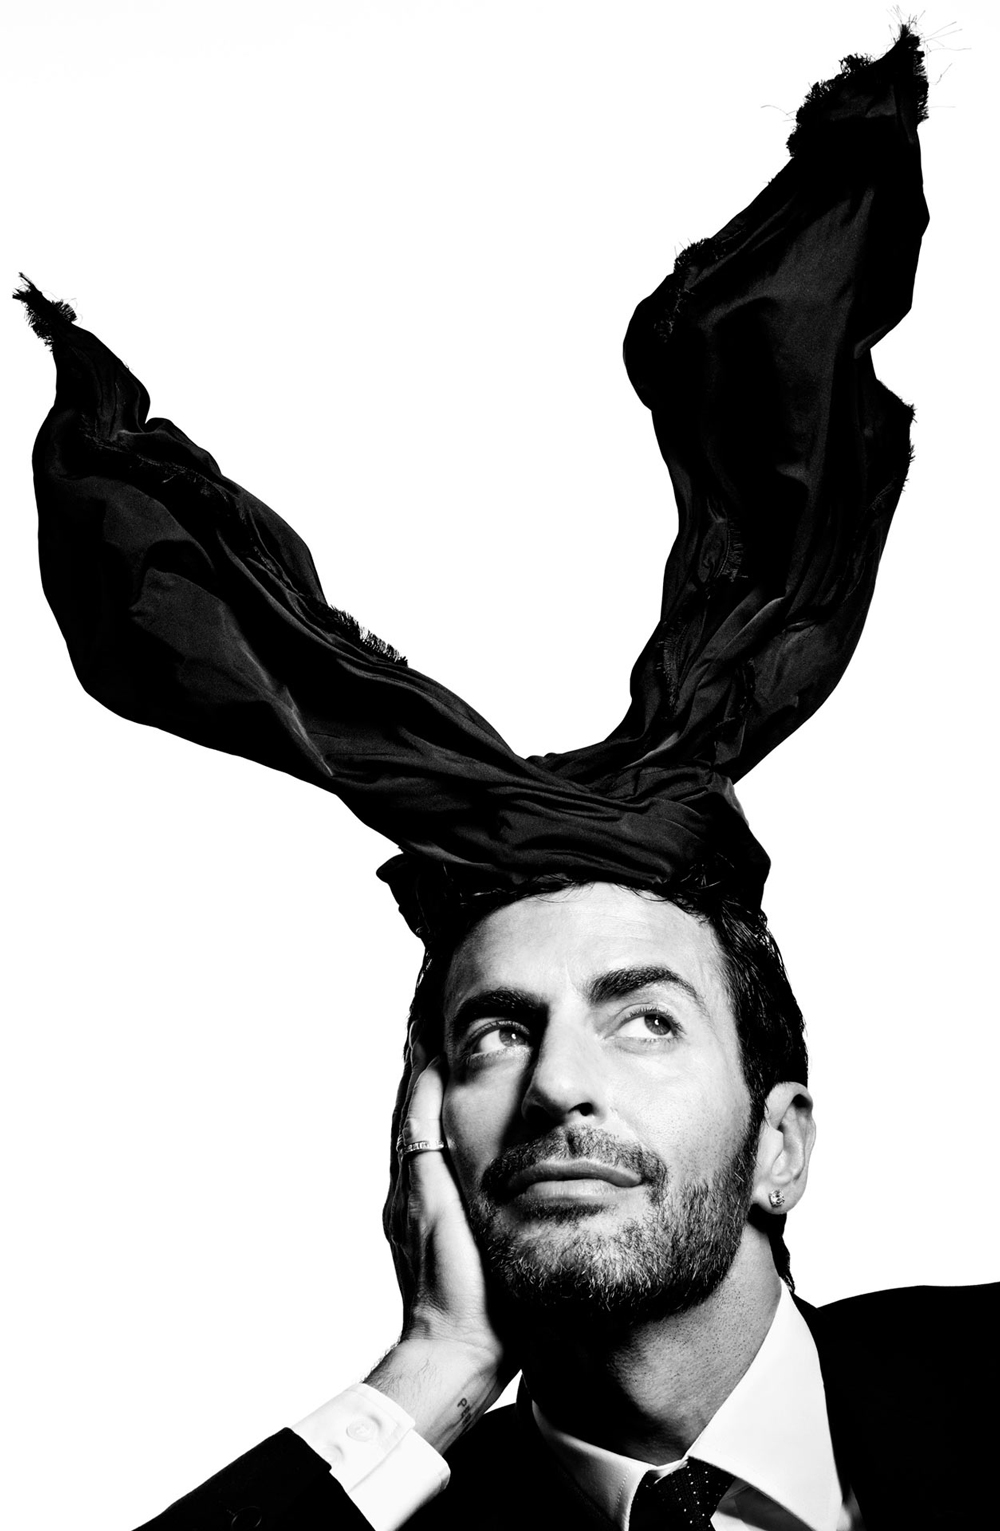 Marc Jacobs photographed by Craig McDean in 2009 via fashioned by love british fashion blog